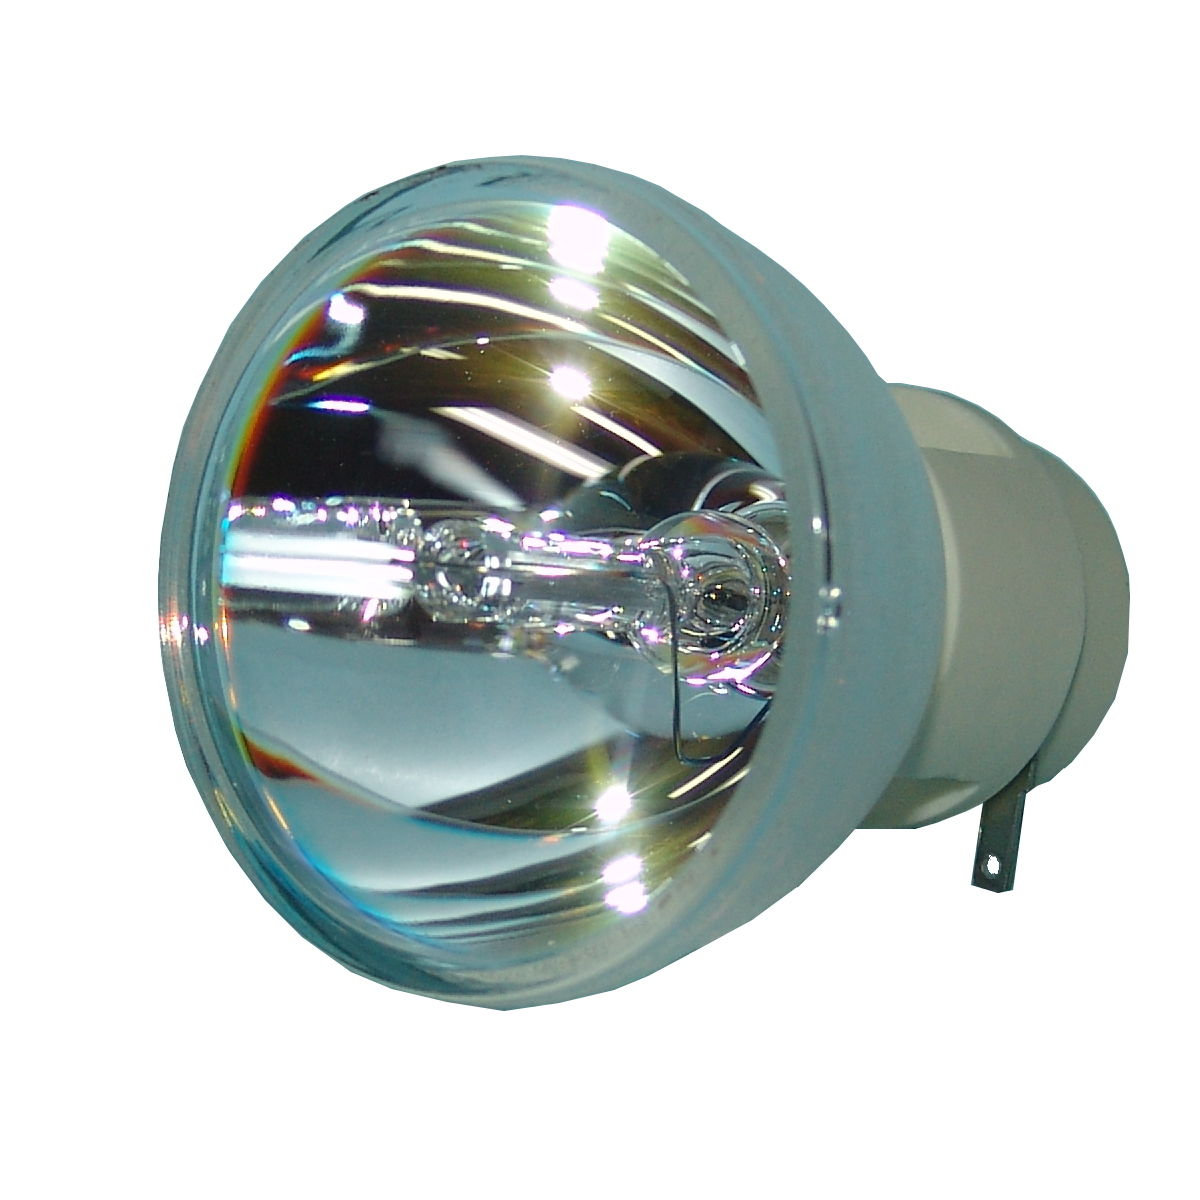 Compatible Bare Bulb EC.J9300.001 for Acer P5290 P5390W P5200 Projector Bulb Lamp Without Housing Free Shipping free shipping ec jea00 001 compatible bare lamp for acer p1223 180day warranty